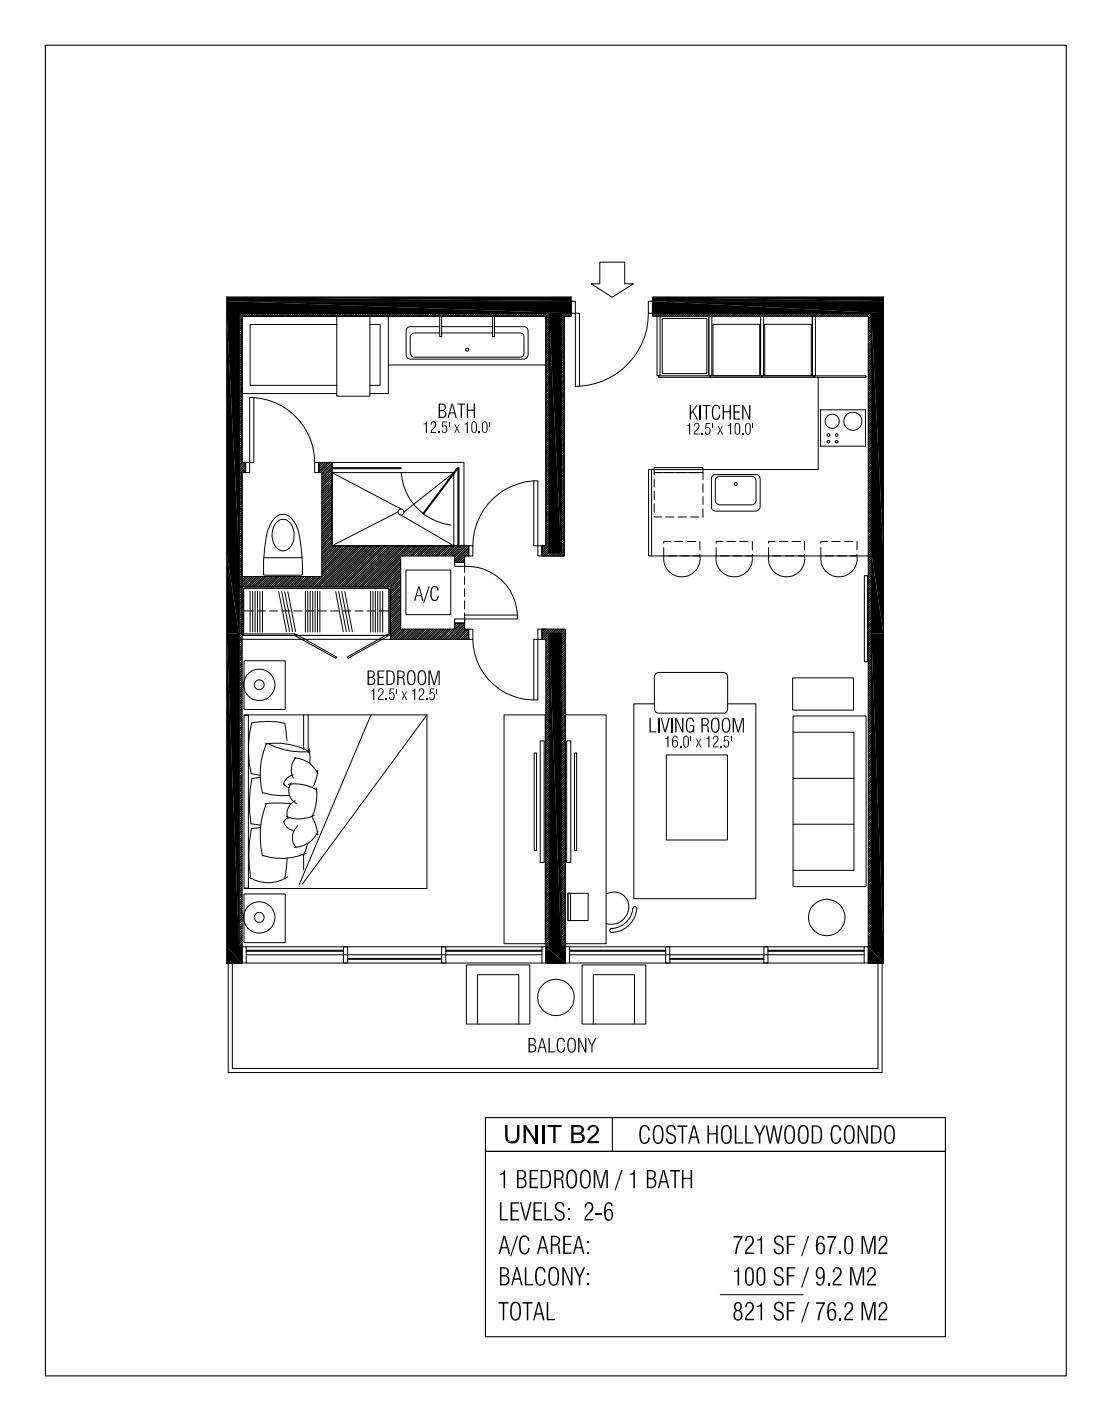 Melia Costa Hollywood - Floorplan 7